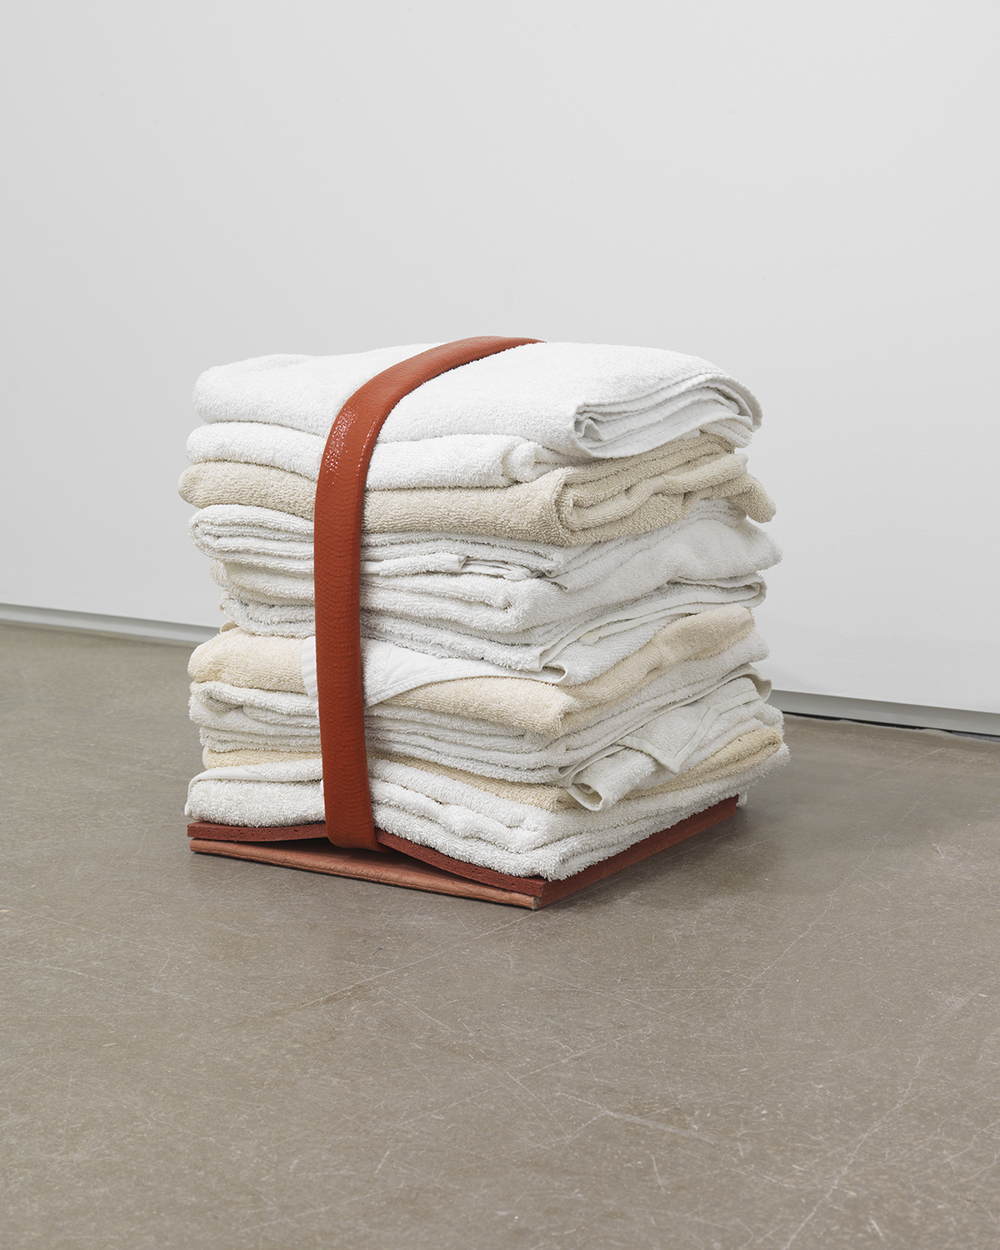 Mother Tongue, 2012 Cotton, rubber, silicone 15 x 15 x 15 inches